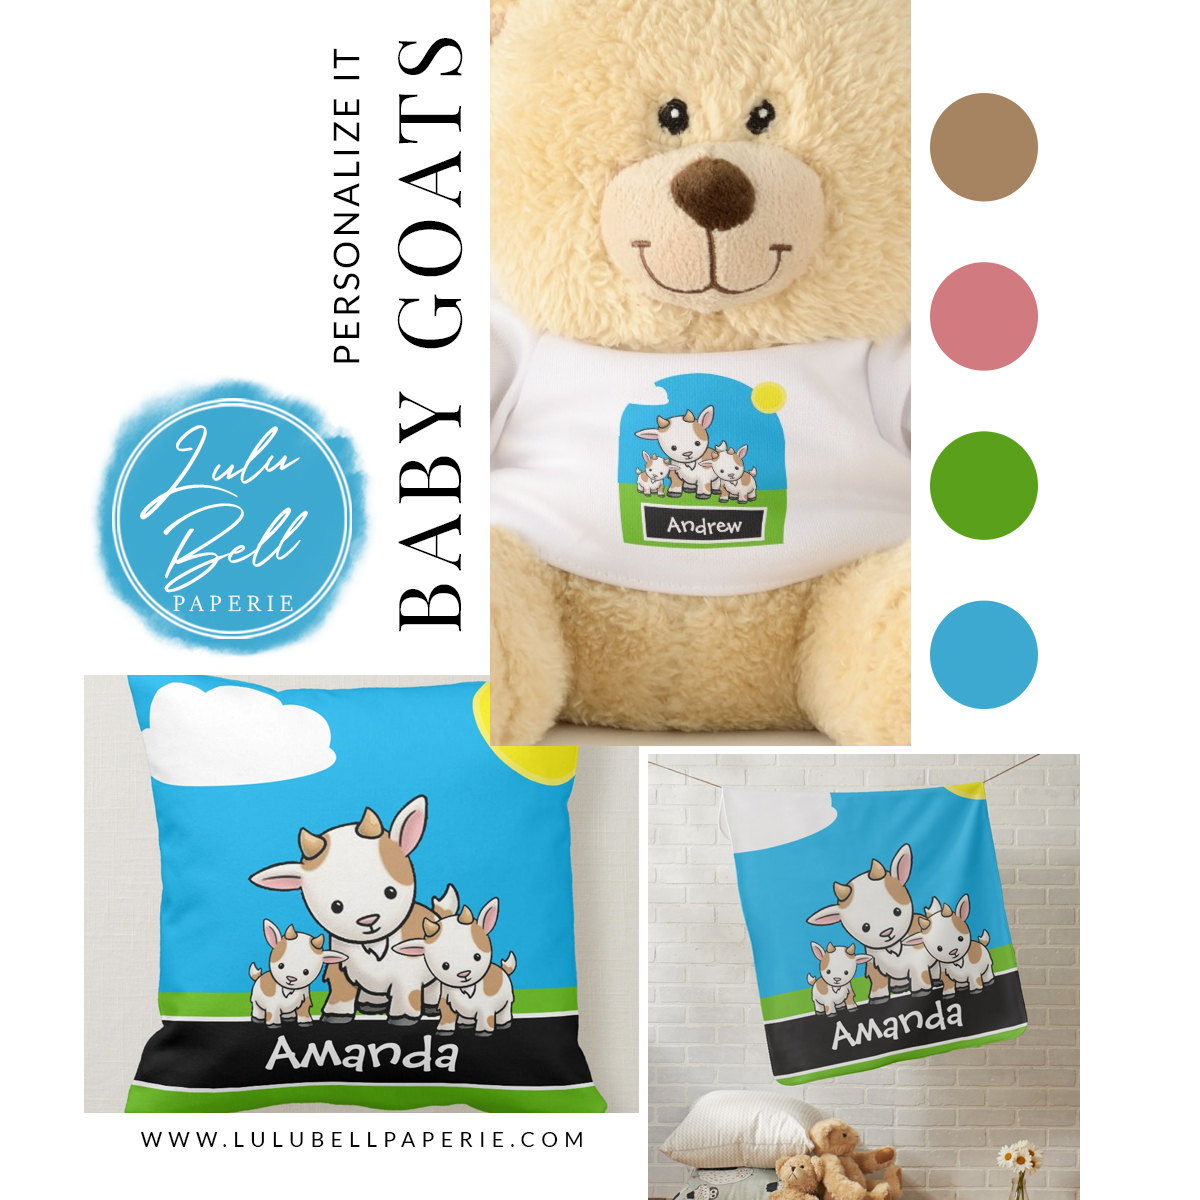 Baby Goats Personalized Nursery Collection - pillow, blanket, and teddy bear with custom name.